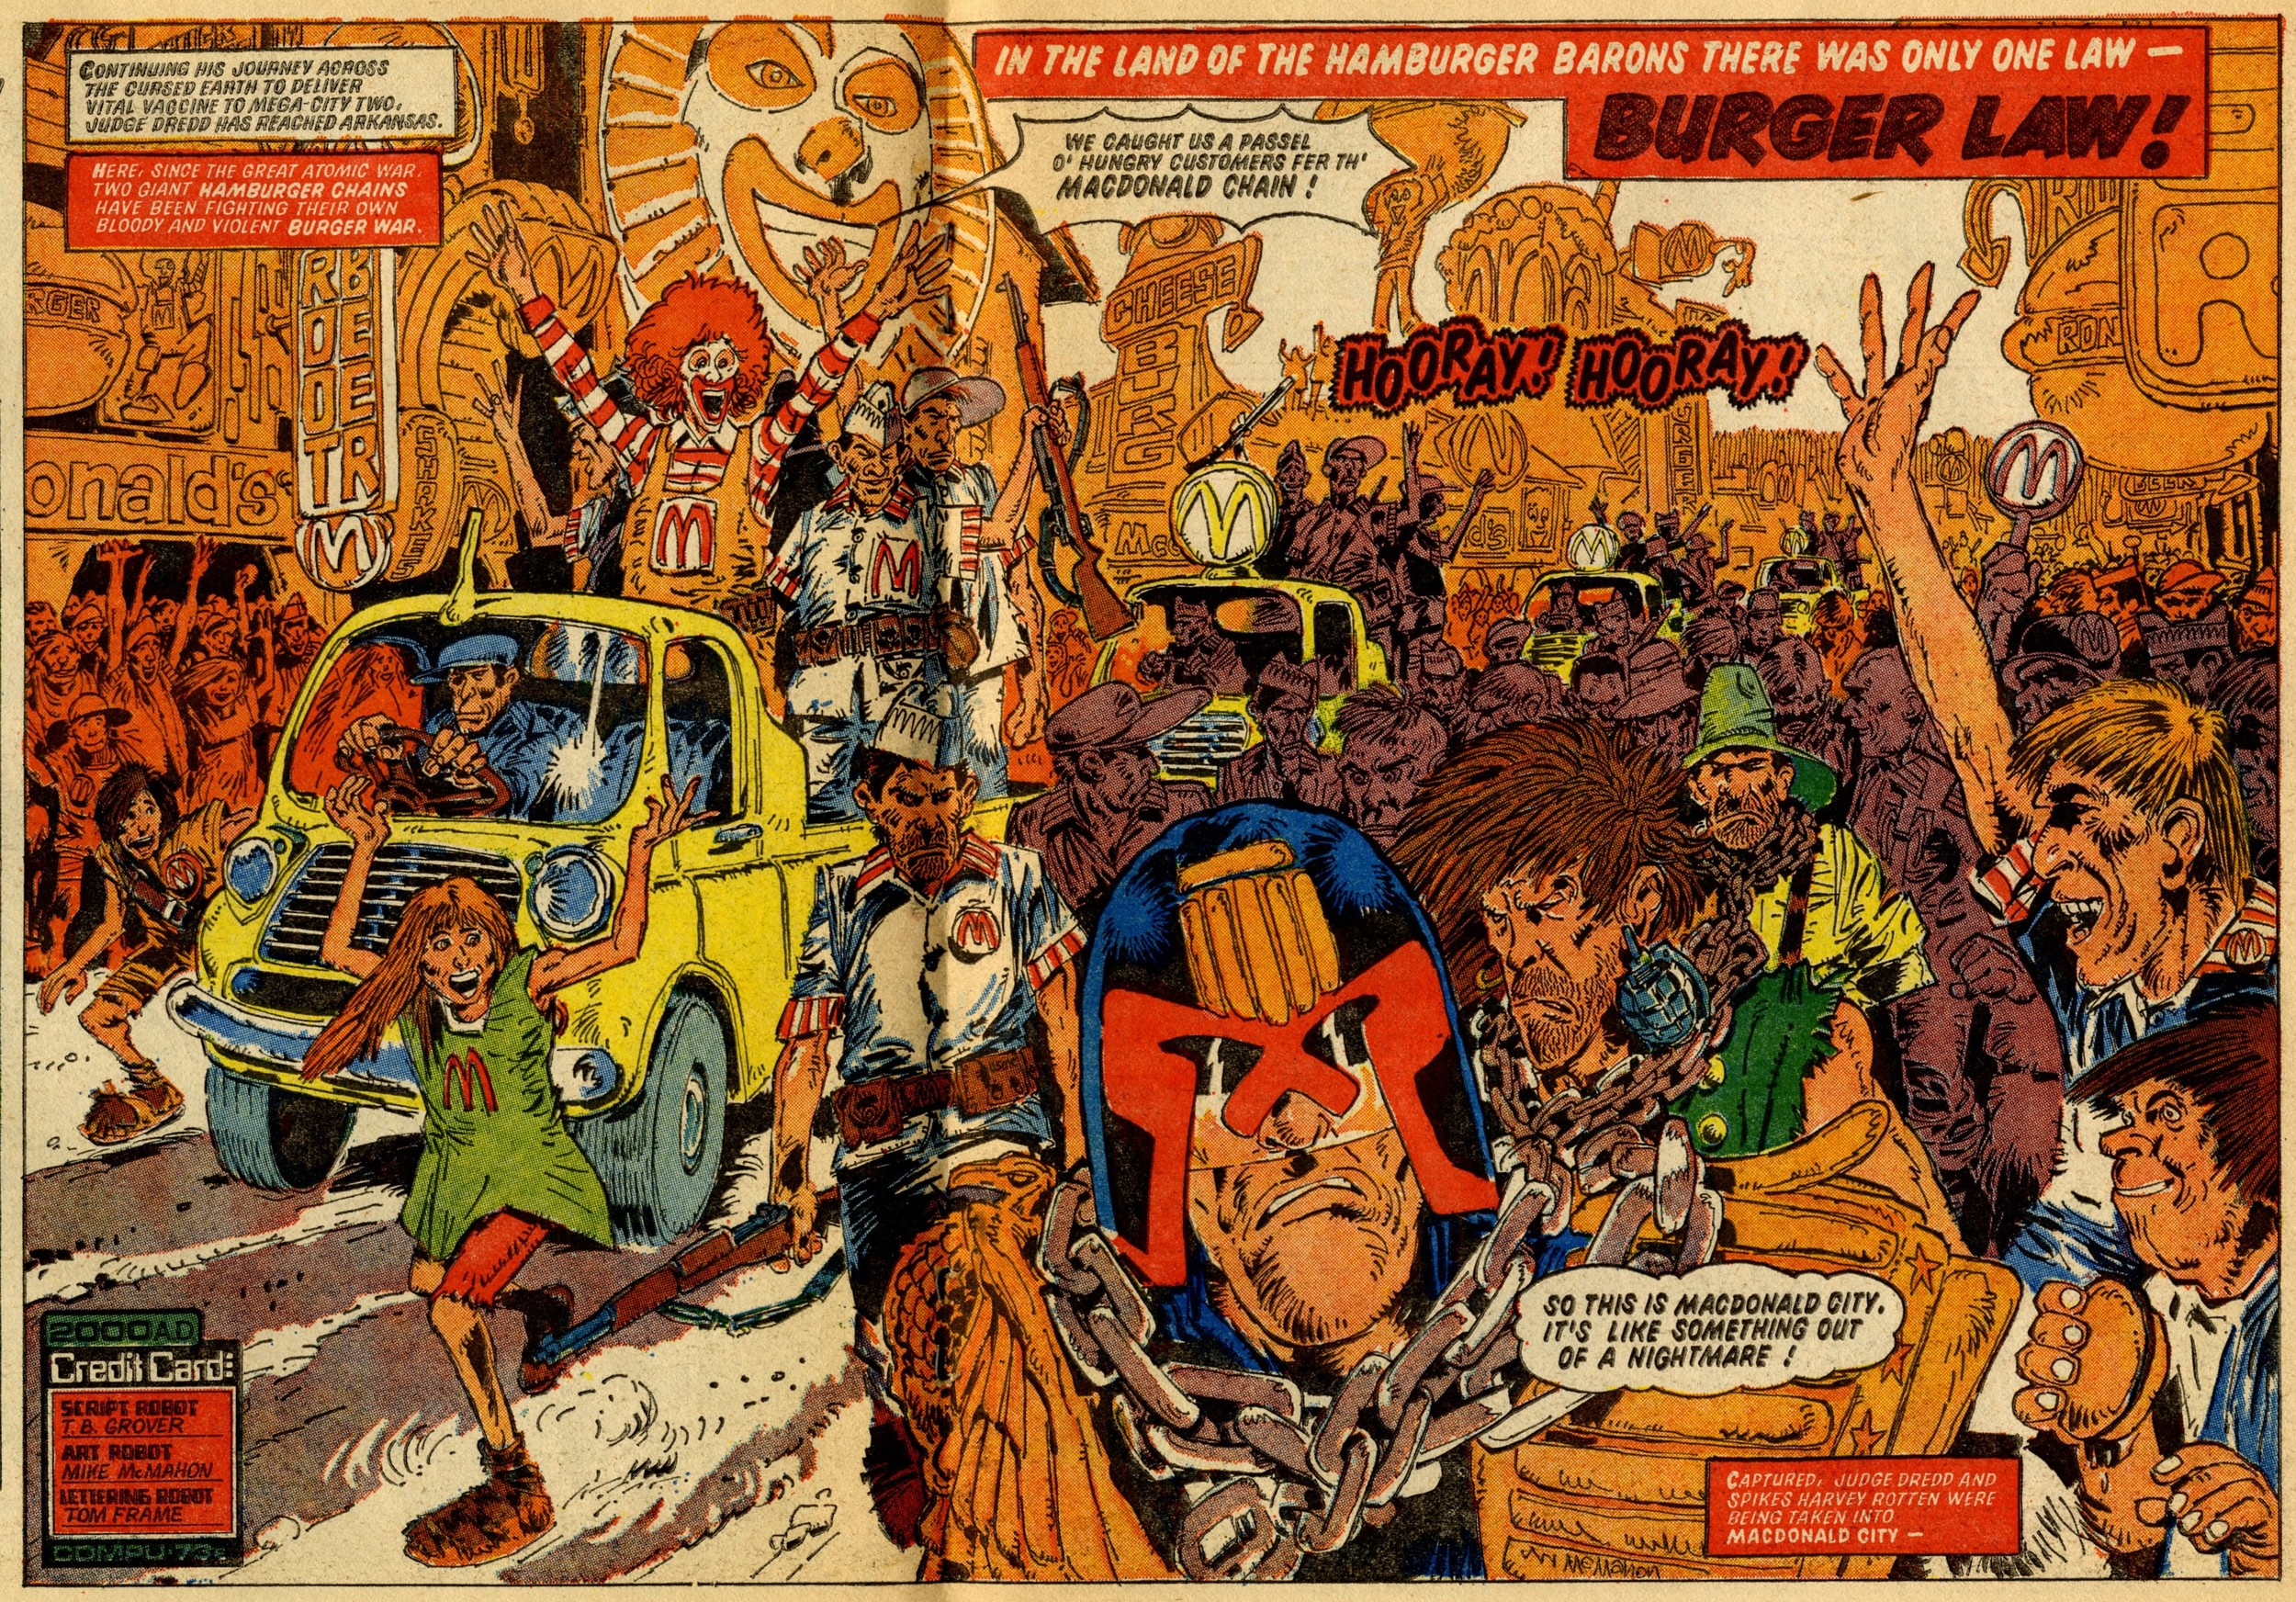 Judge Dredd: The Cursed Earth: John Wagner (writer), Mike McMahon (artist)